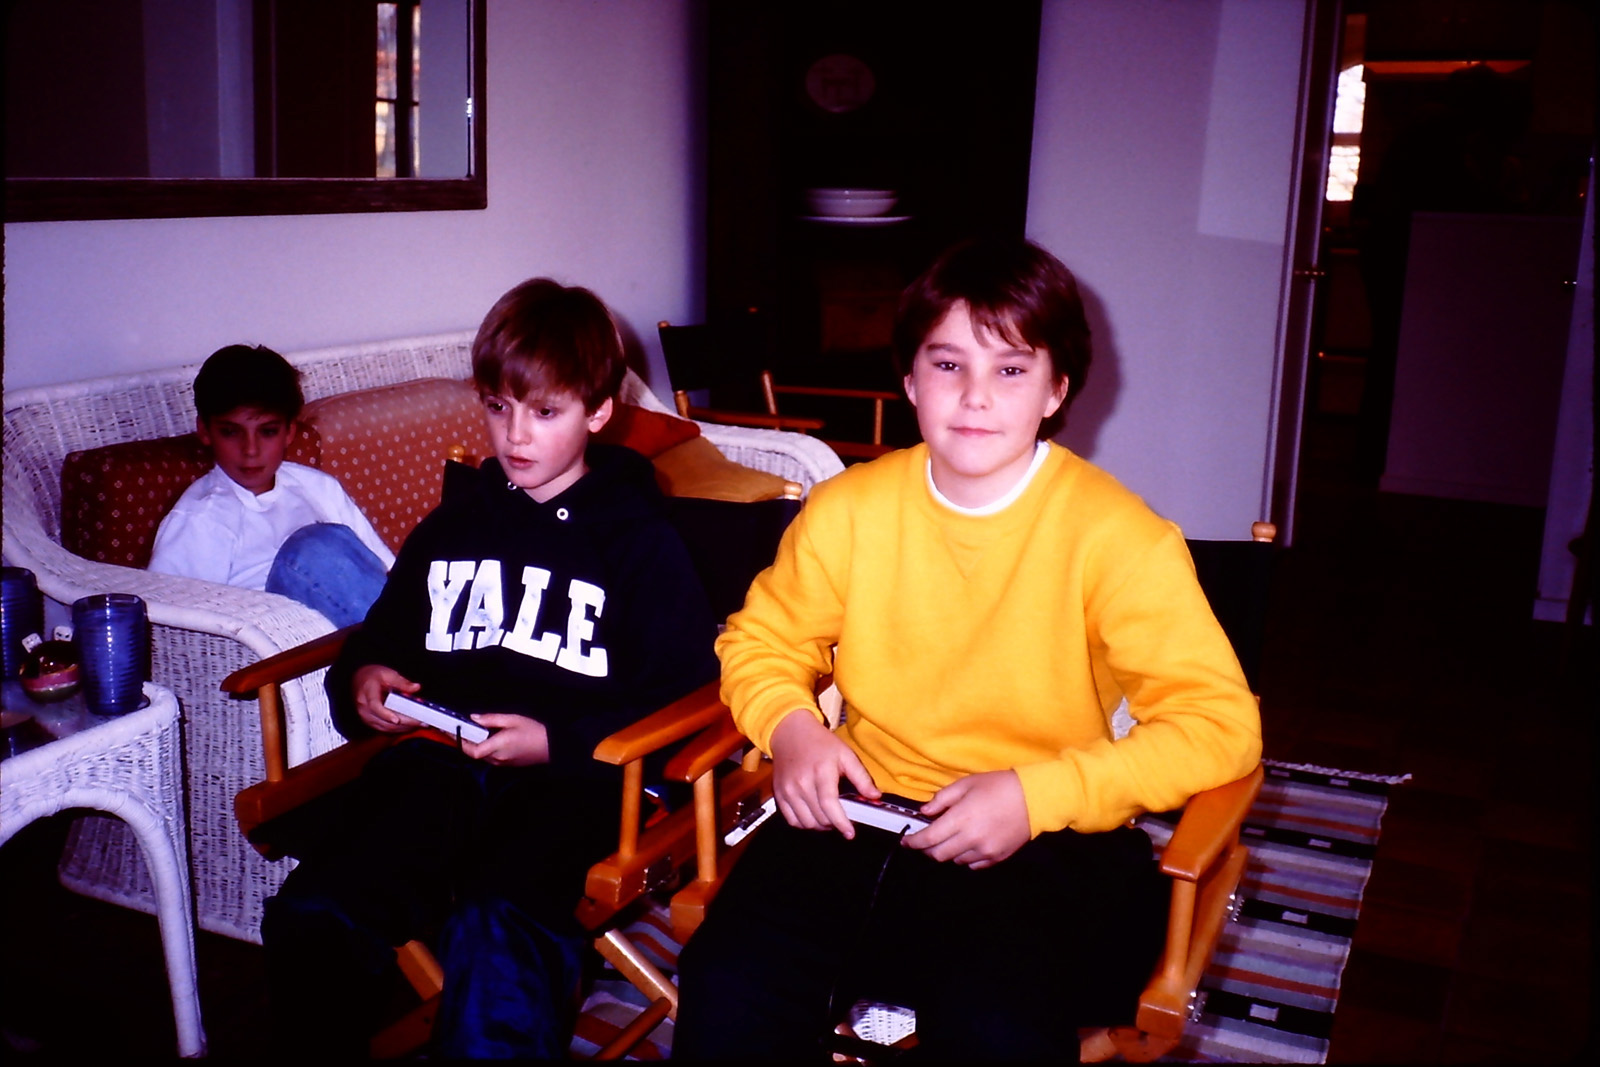 playing Nintendo with friends